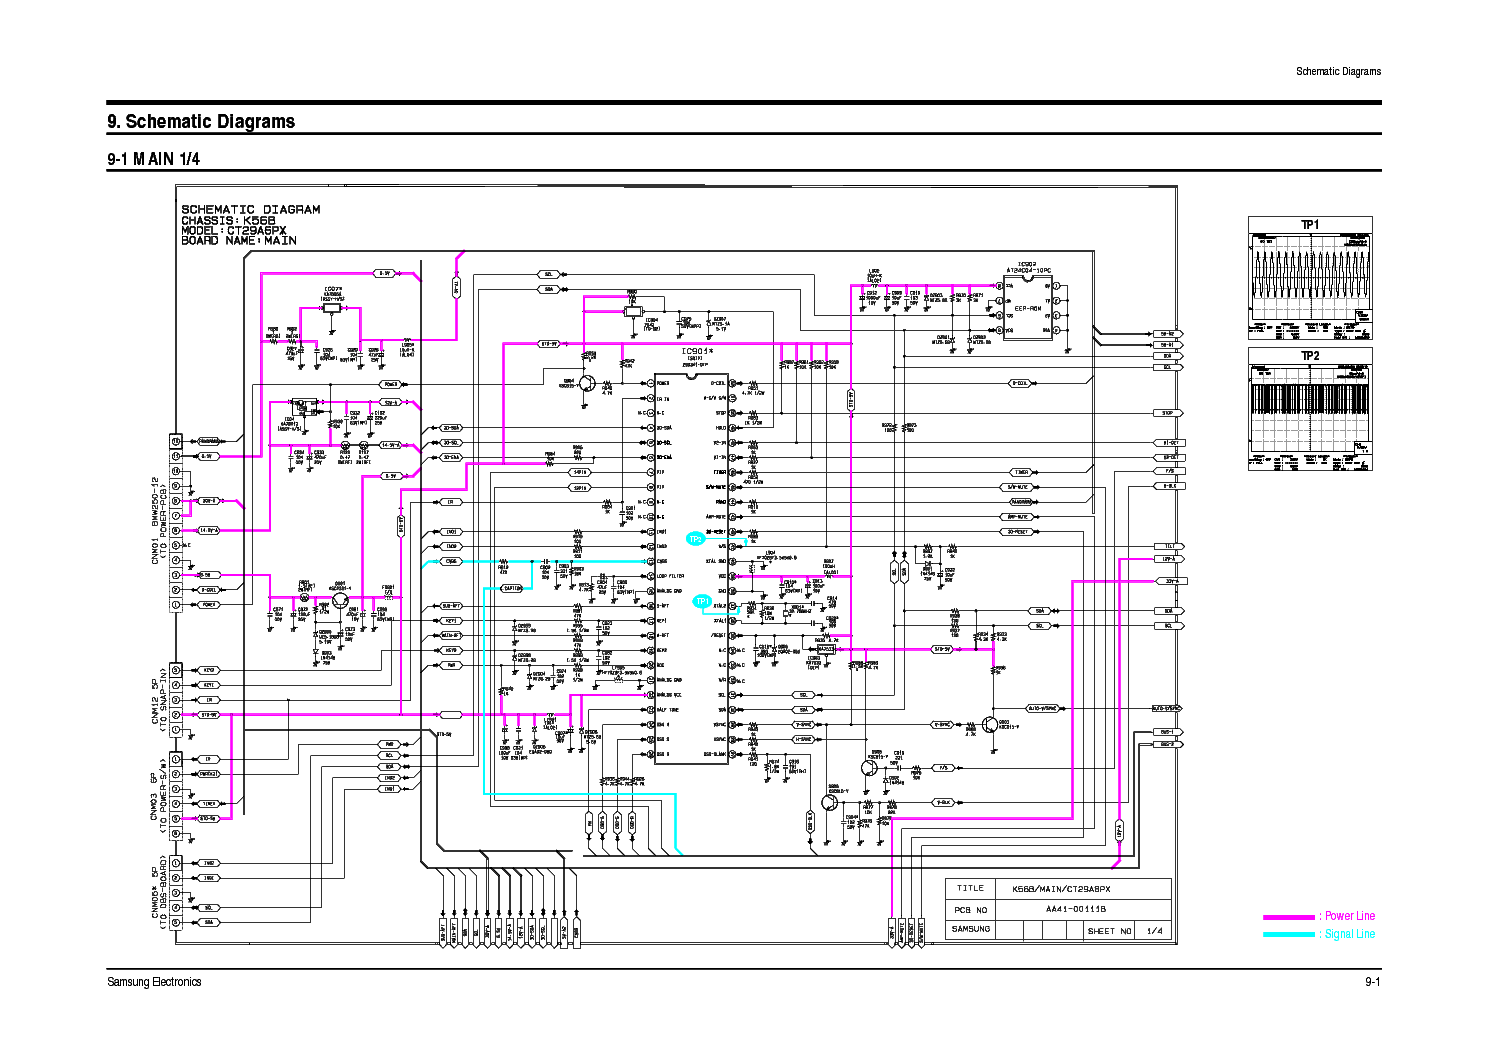 88 Land Rover Wiring Diagram as well Wiring Diagrams And Pinouts together with Wiring Diagram For 2001 Chevy Impala furthermore Wiring Diagram 2002 Honda Odyssey Seat as well Saab 9 3 Stereo Wiring Diagram. on 2000 honda accord radio wiring diagram